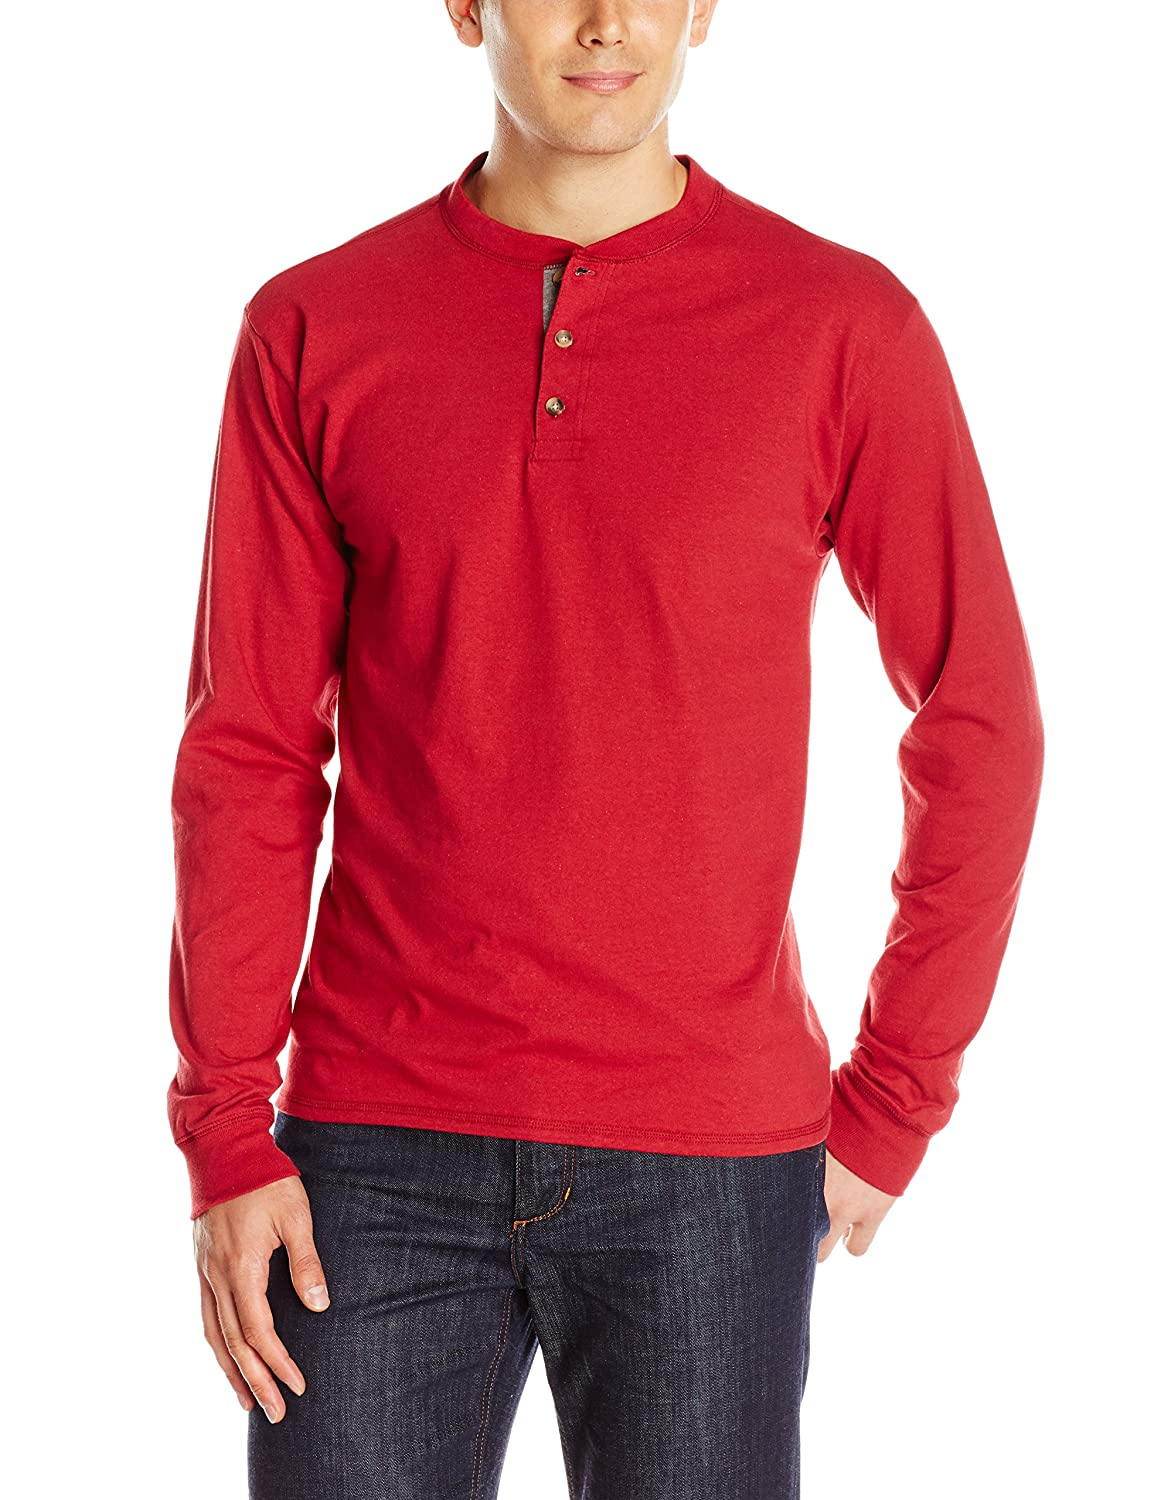 Hanes Men's Long-Sleeve Beefy Henley Shirt O5719